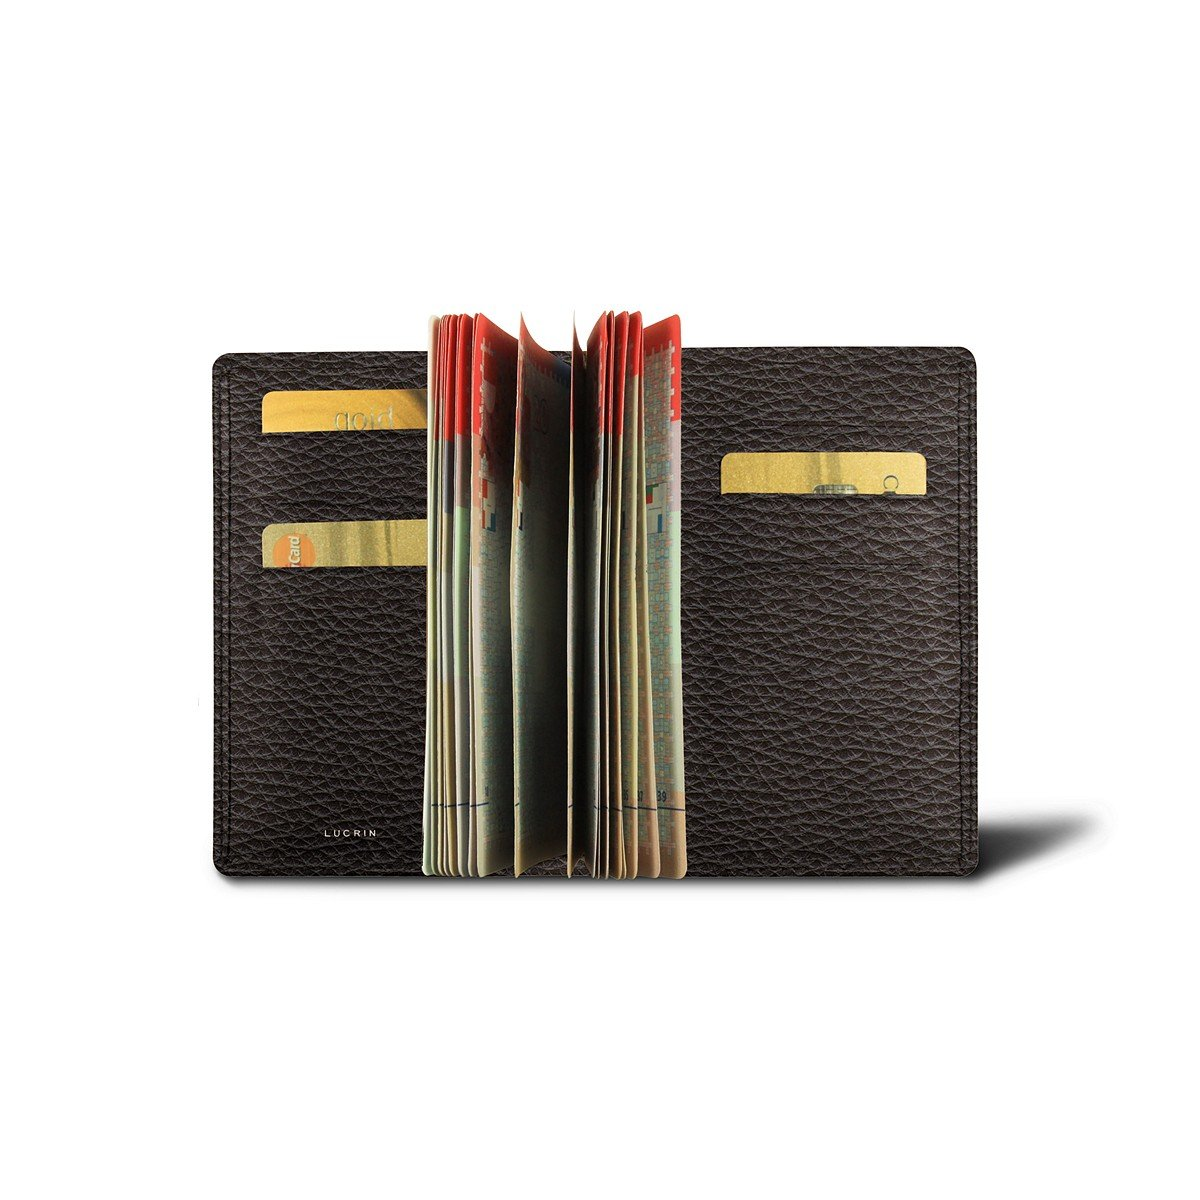 Lucrin - Luxury Passport Holder - Brown - Granulated Leather